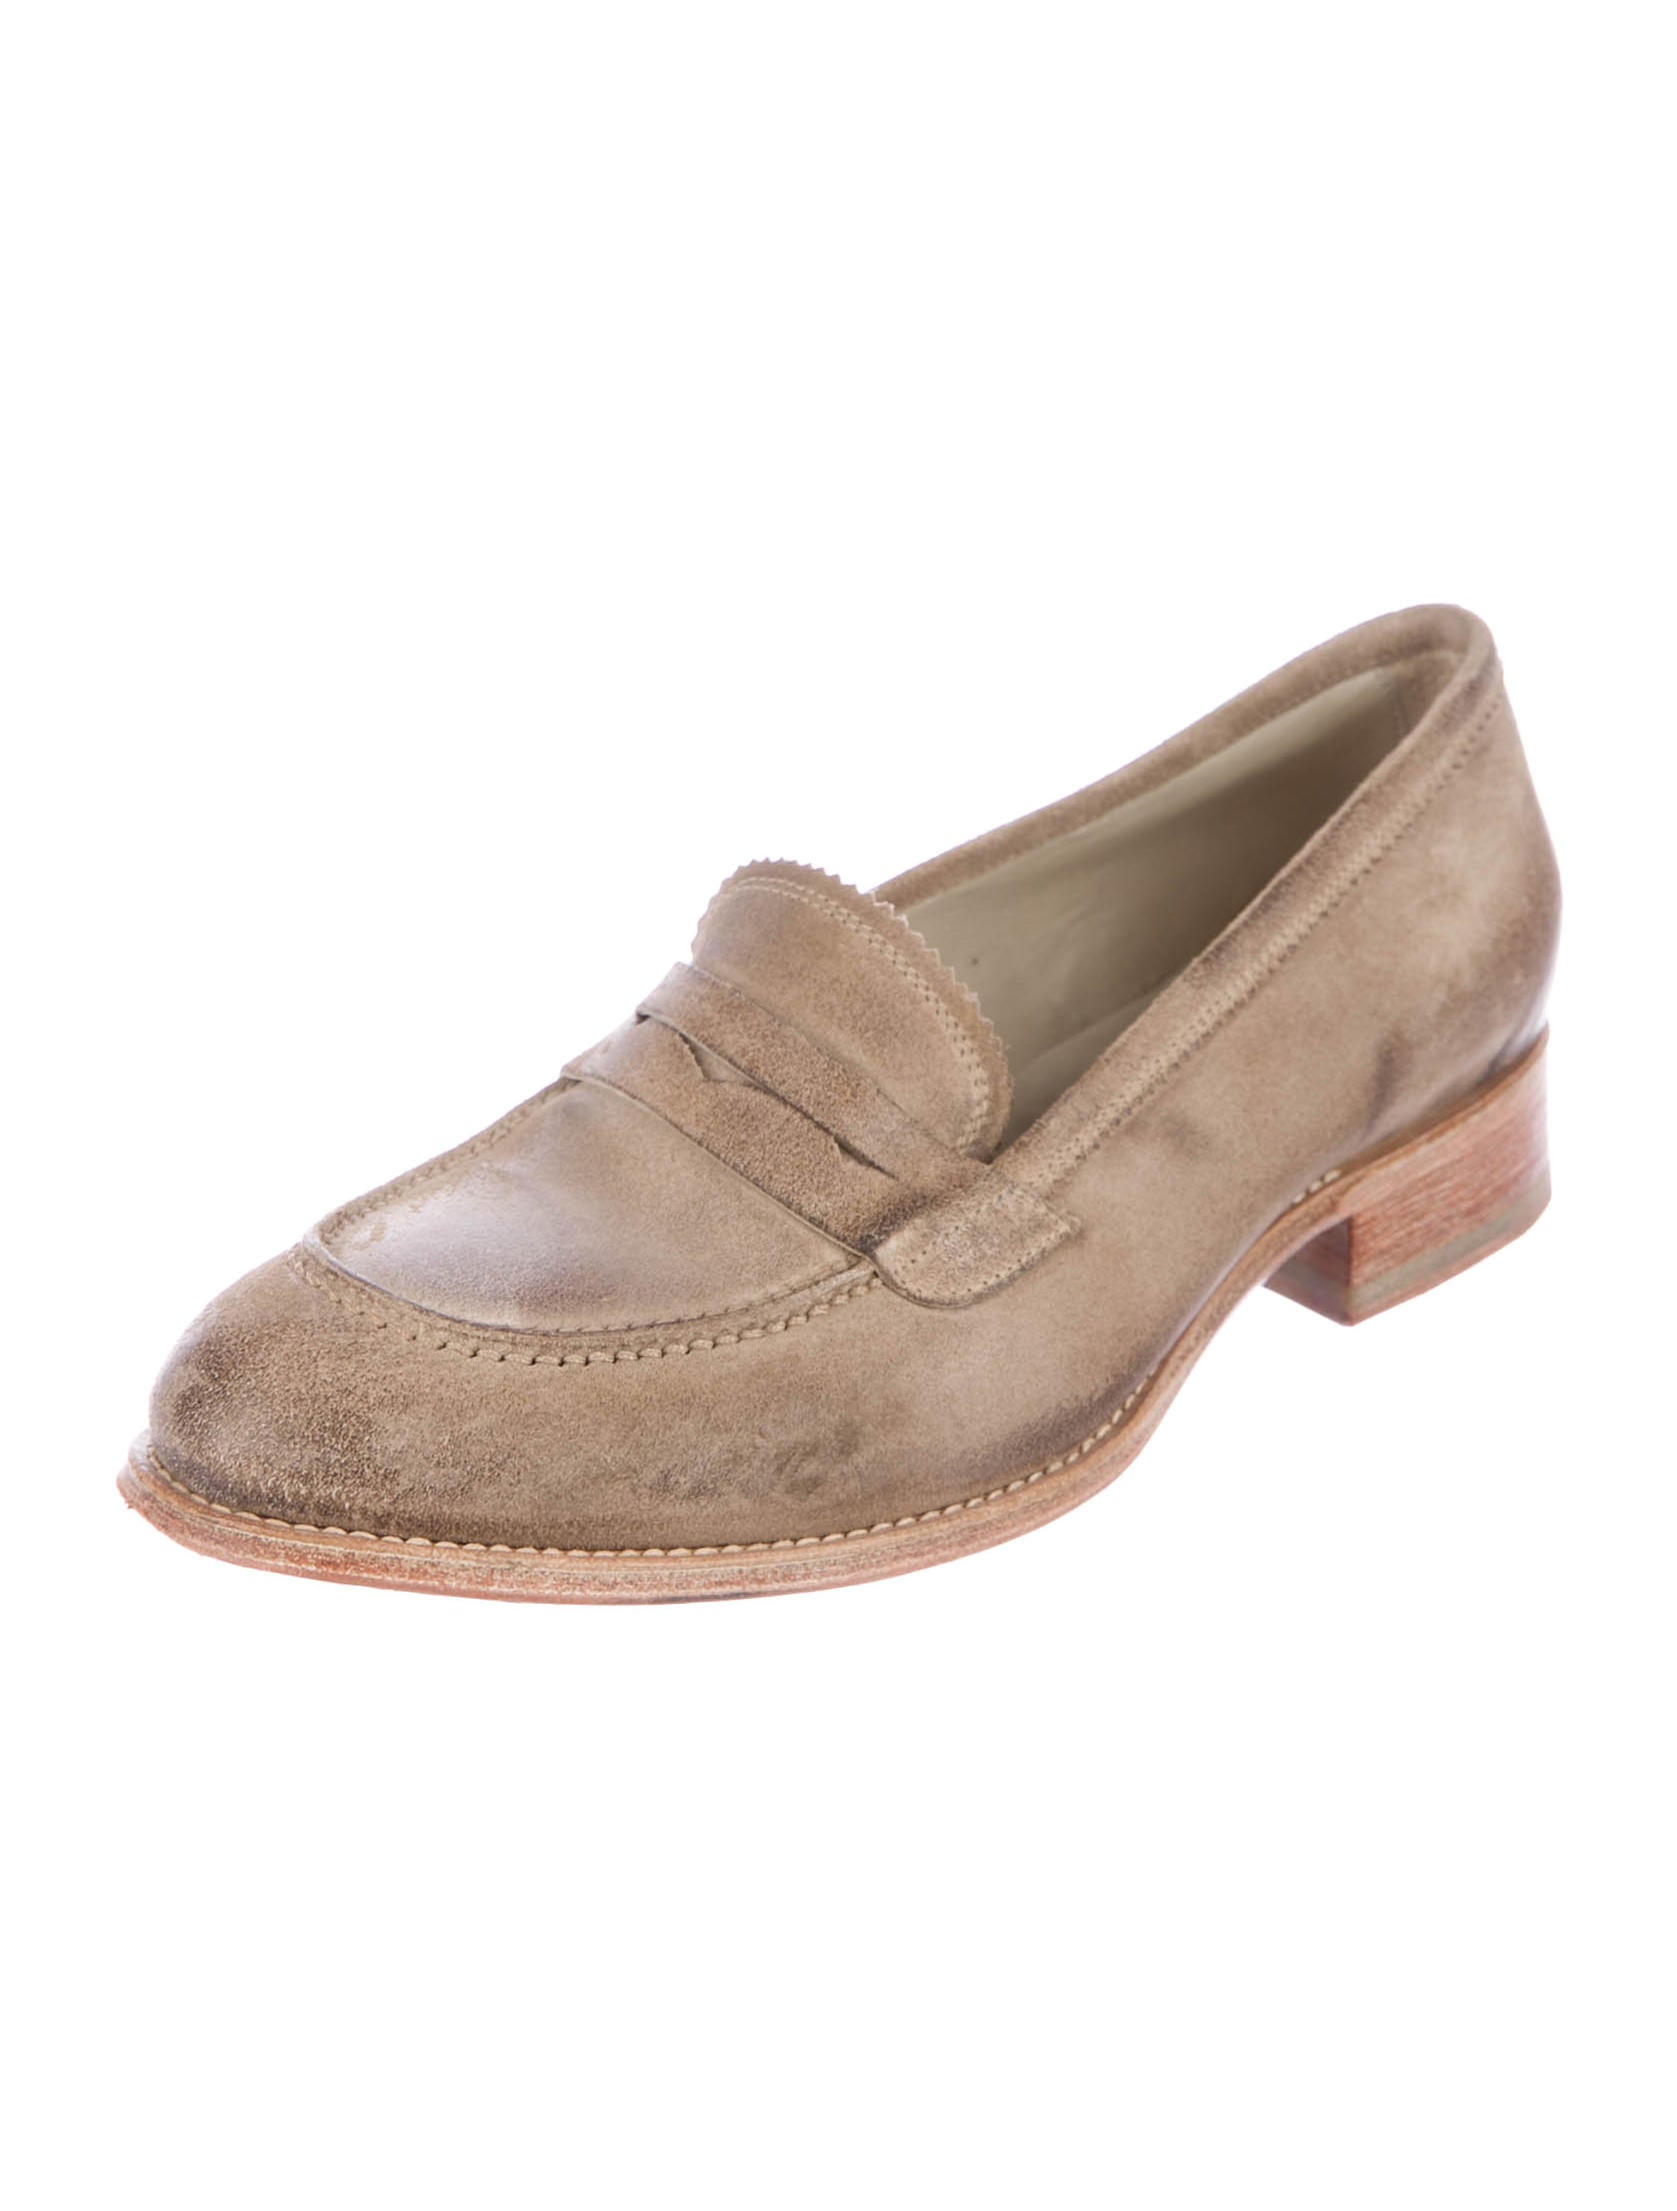 clearance store cheap price buy cheap 100% original n.d.c. Distressed Penny Loafers umjlE4